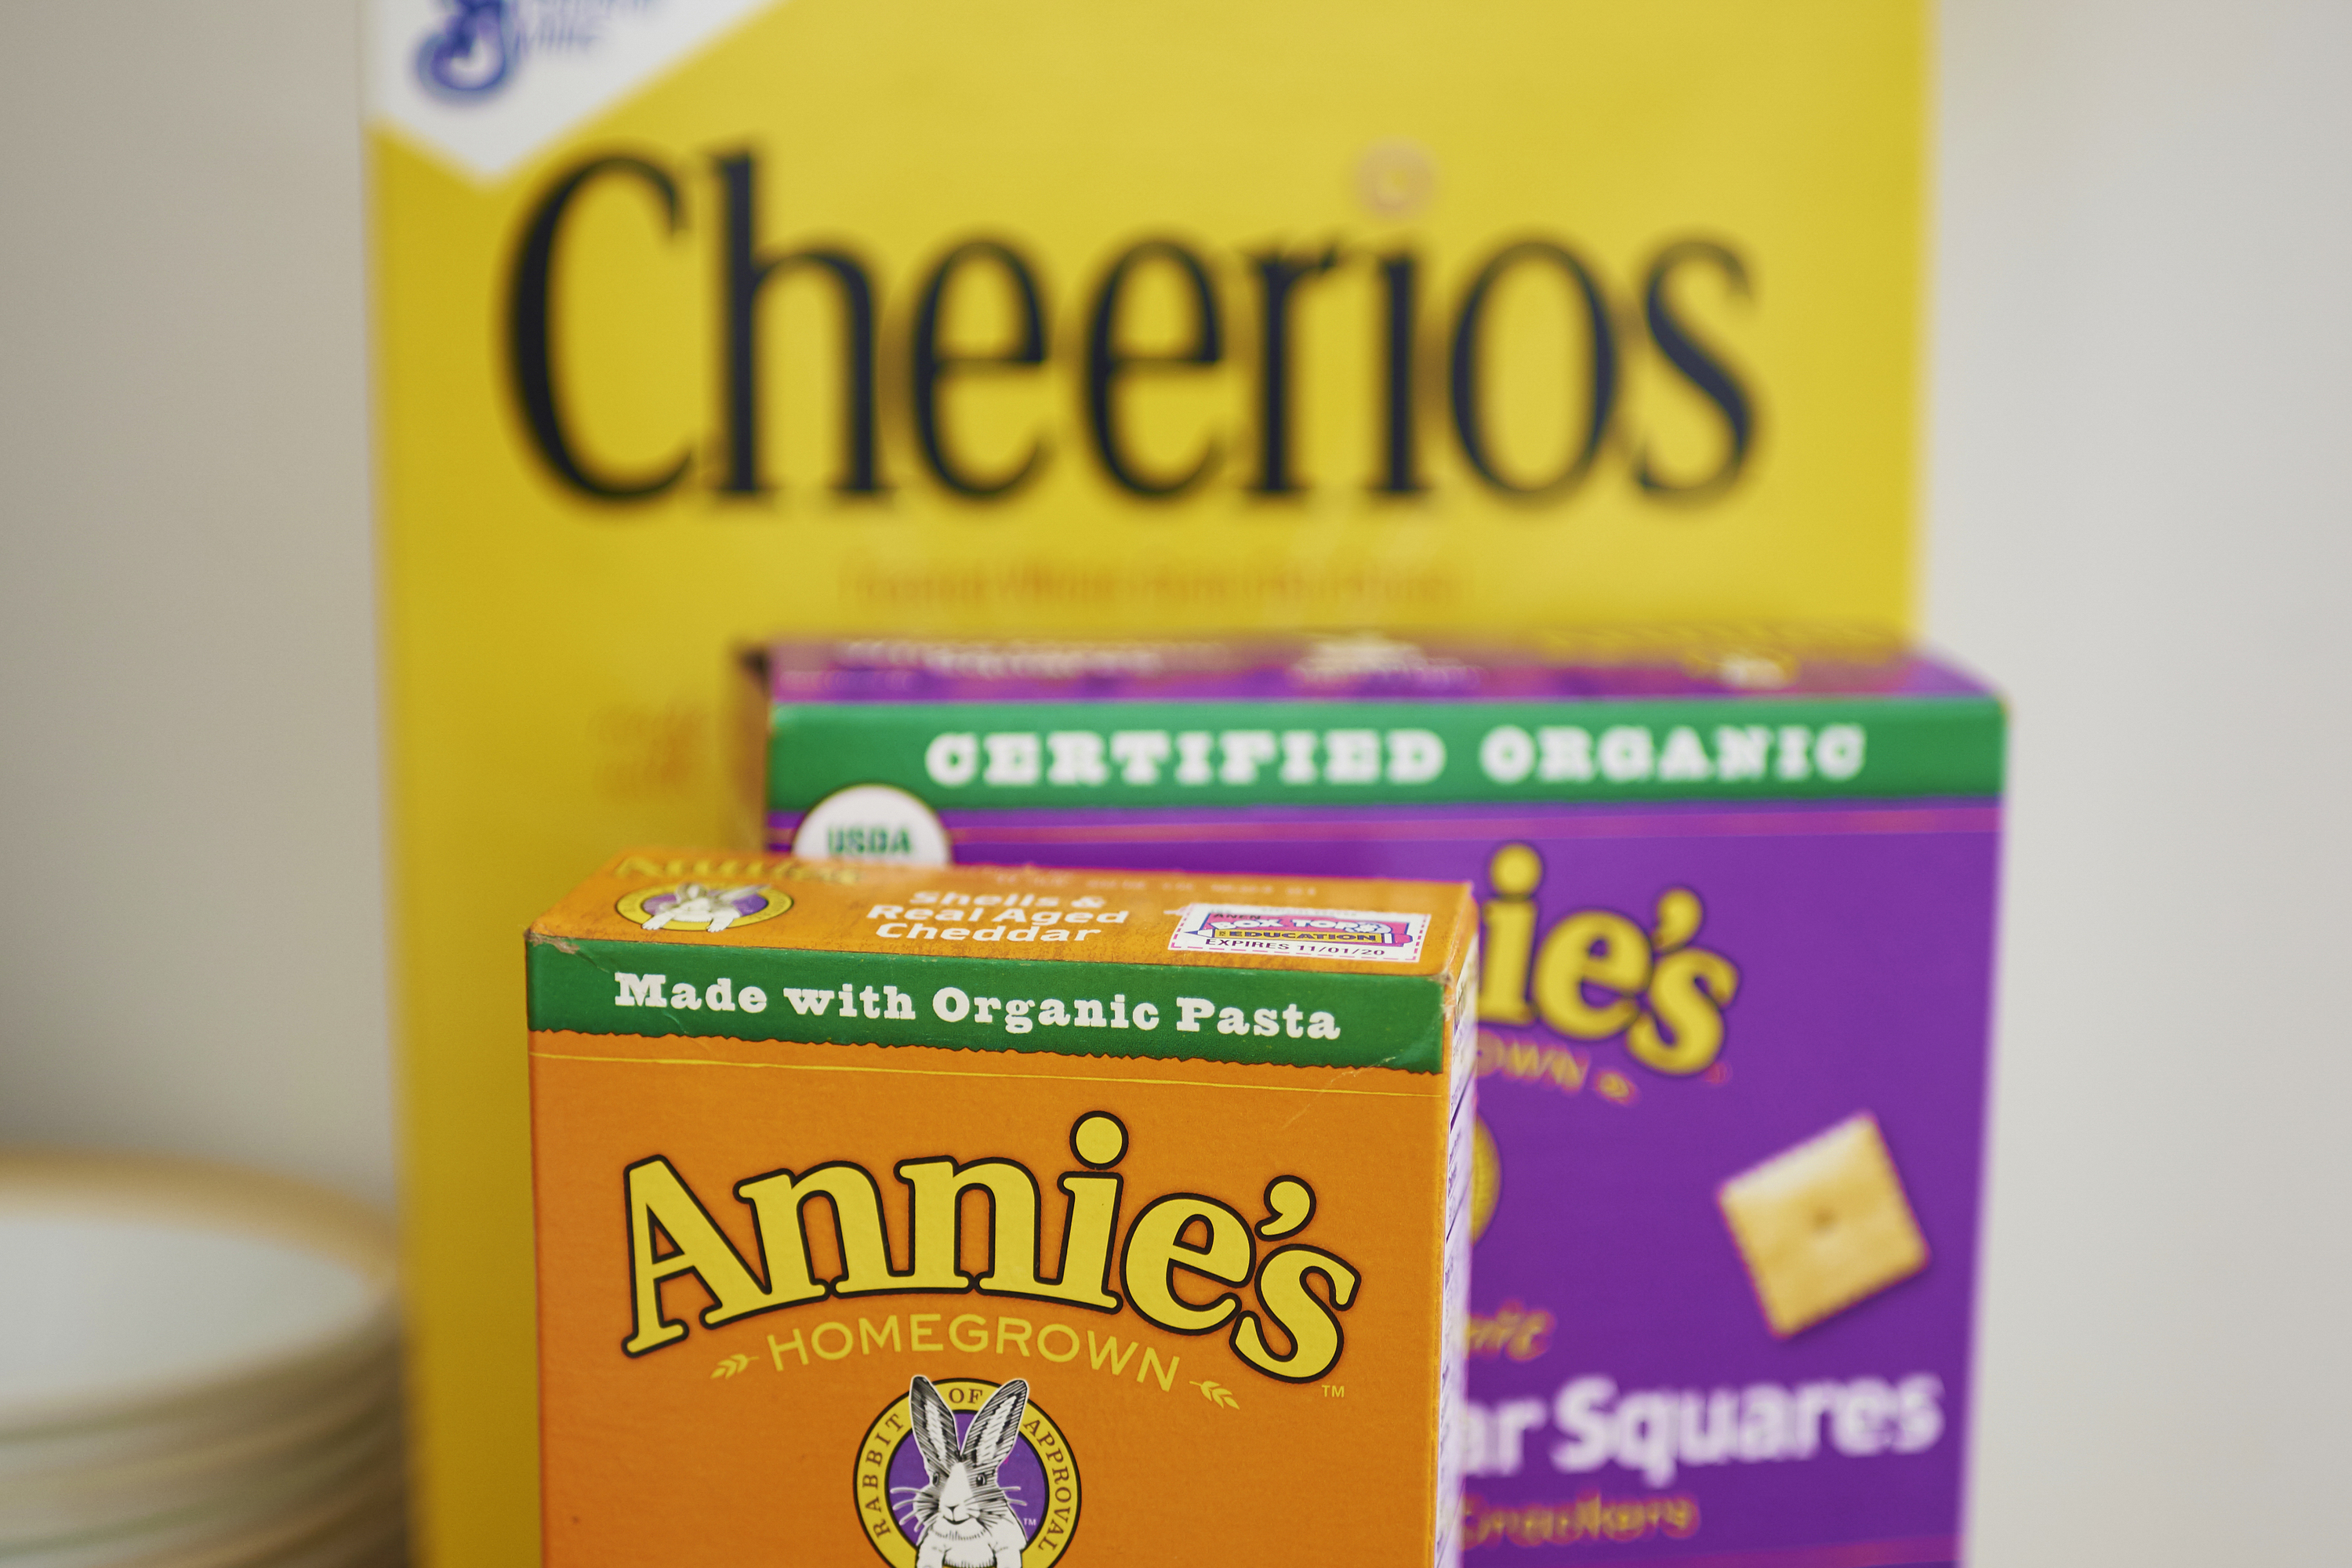 General Mills gives an update on its North America agency review process